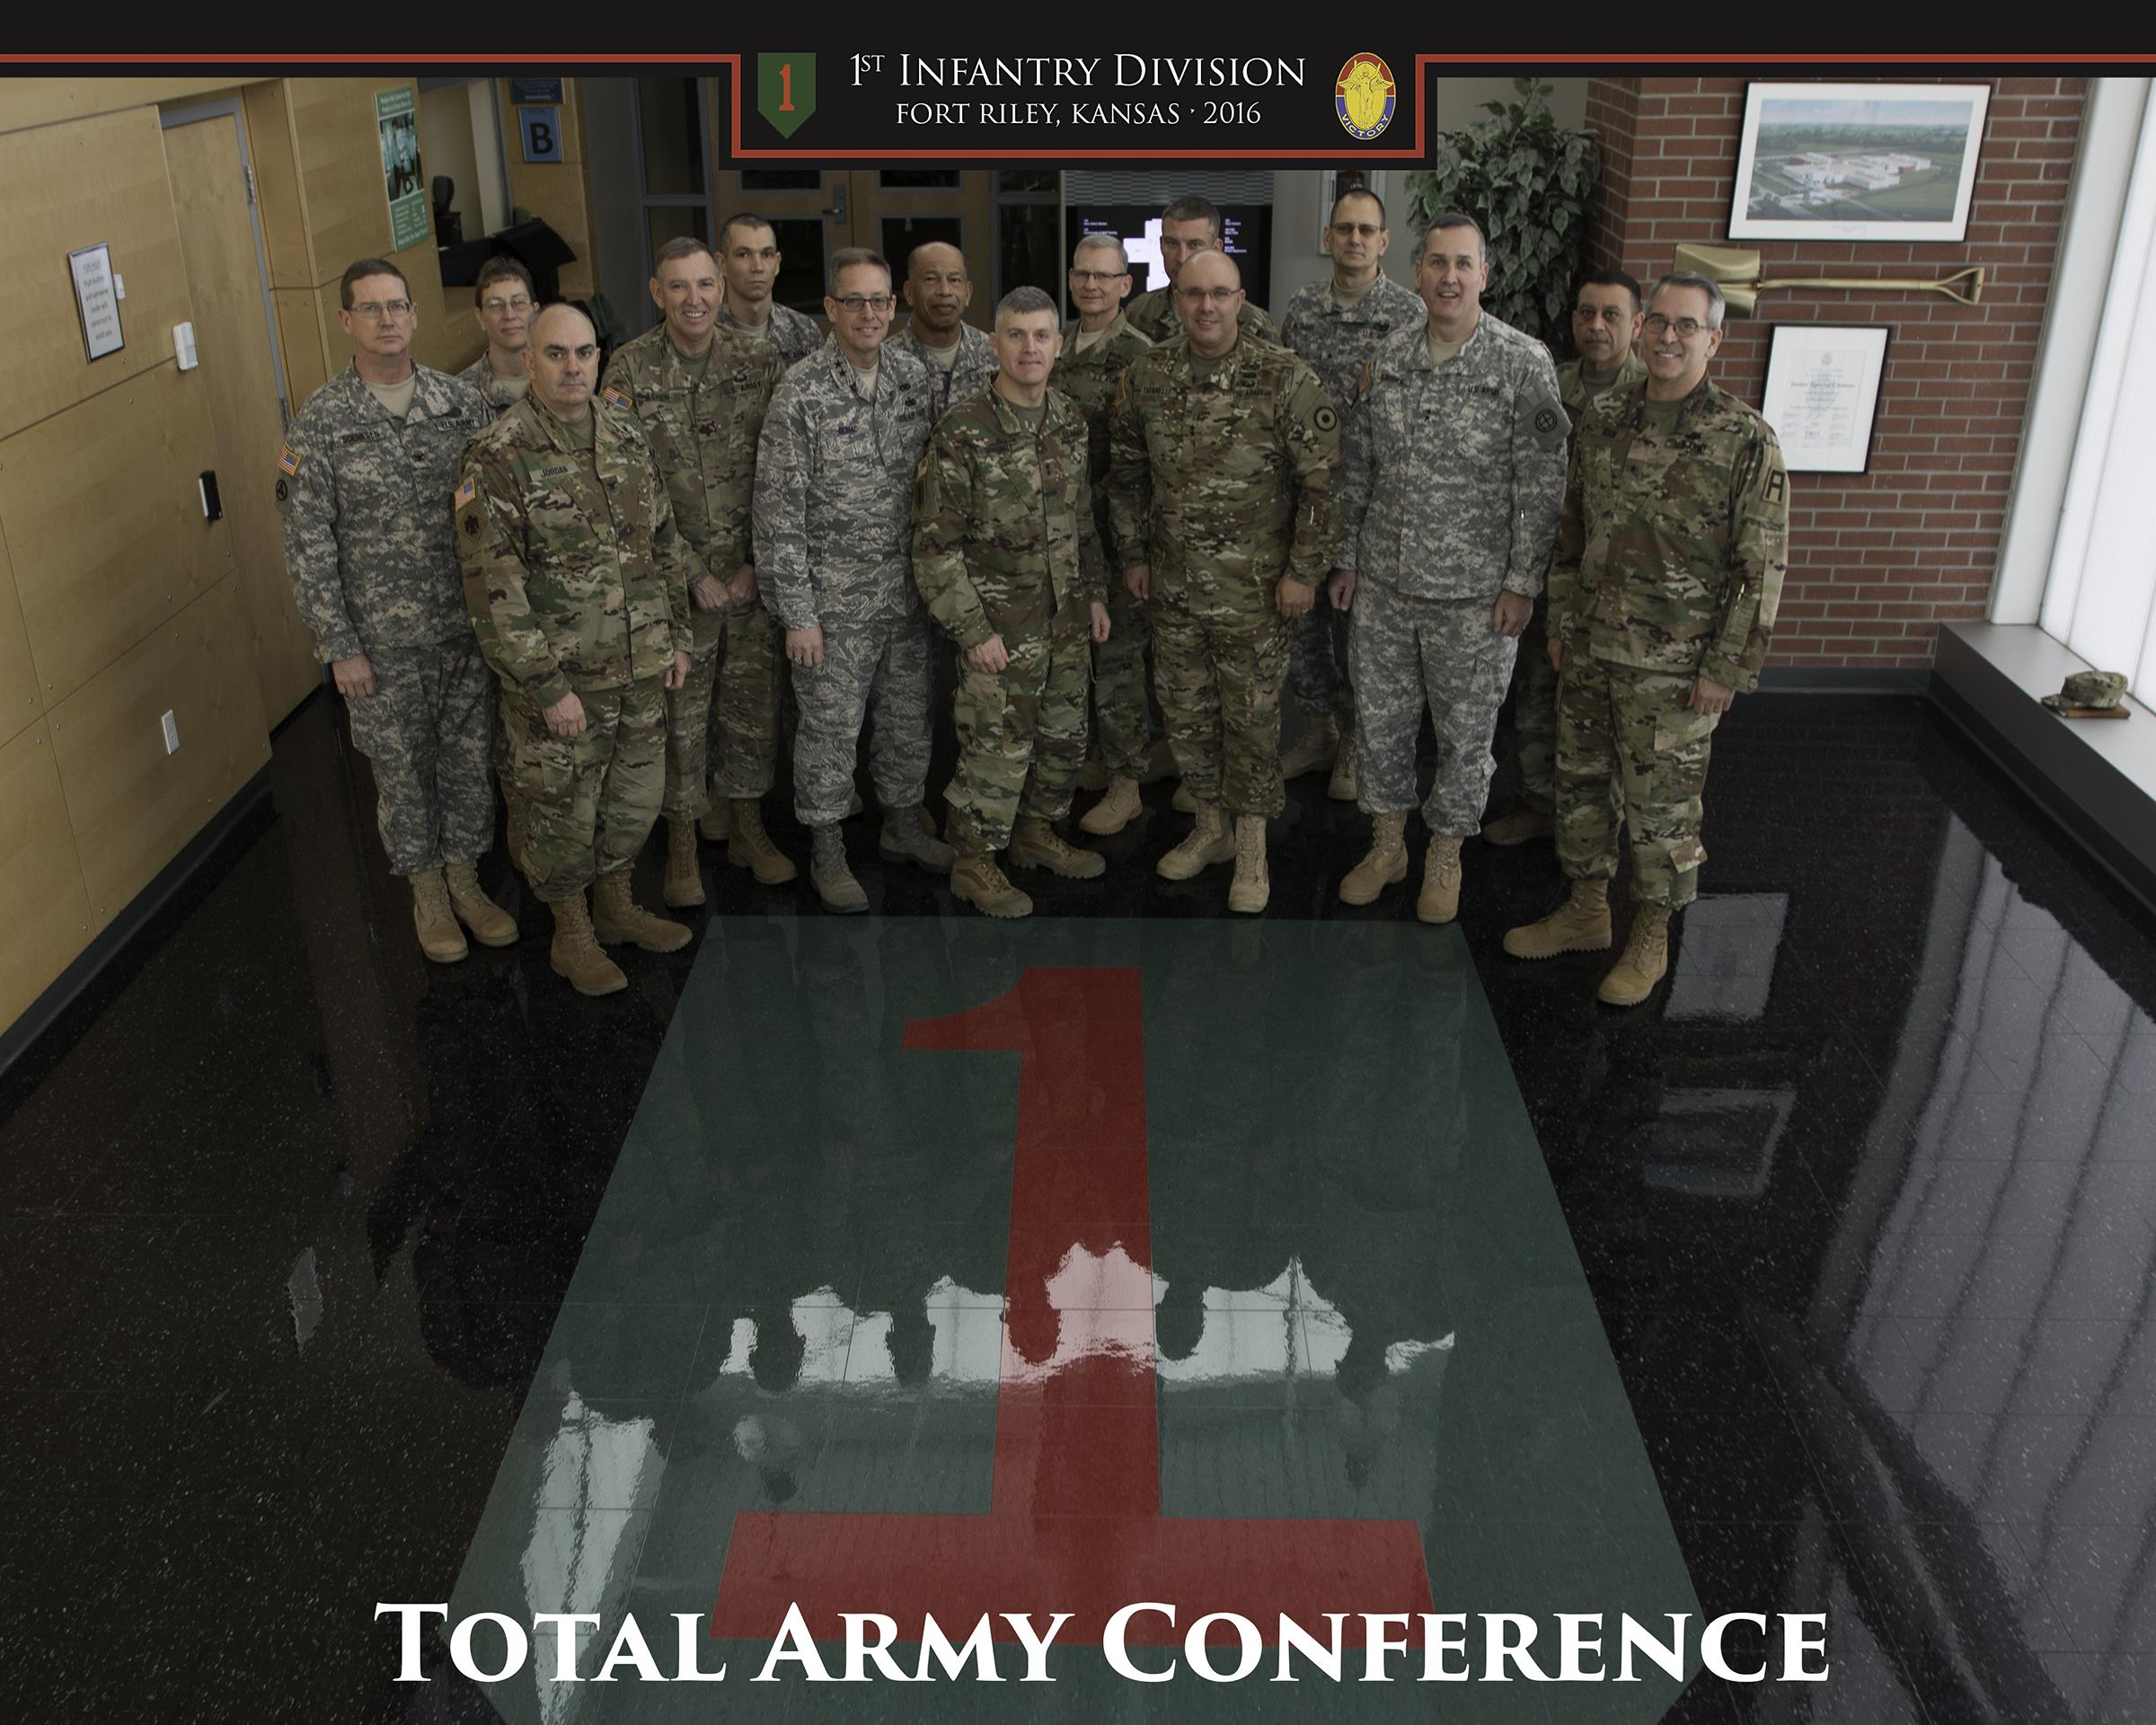 Fort Riley Photo Gallery